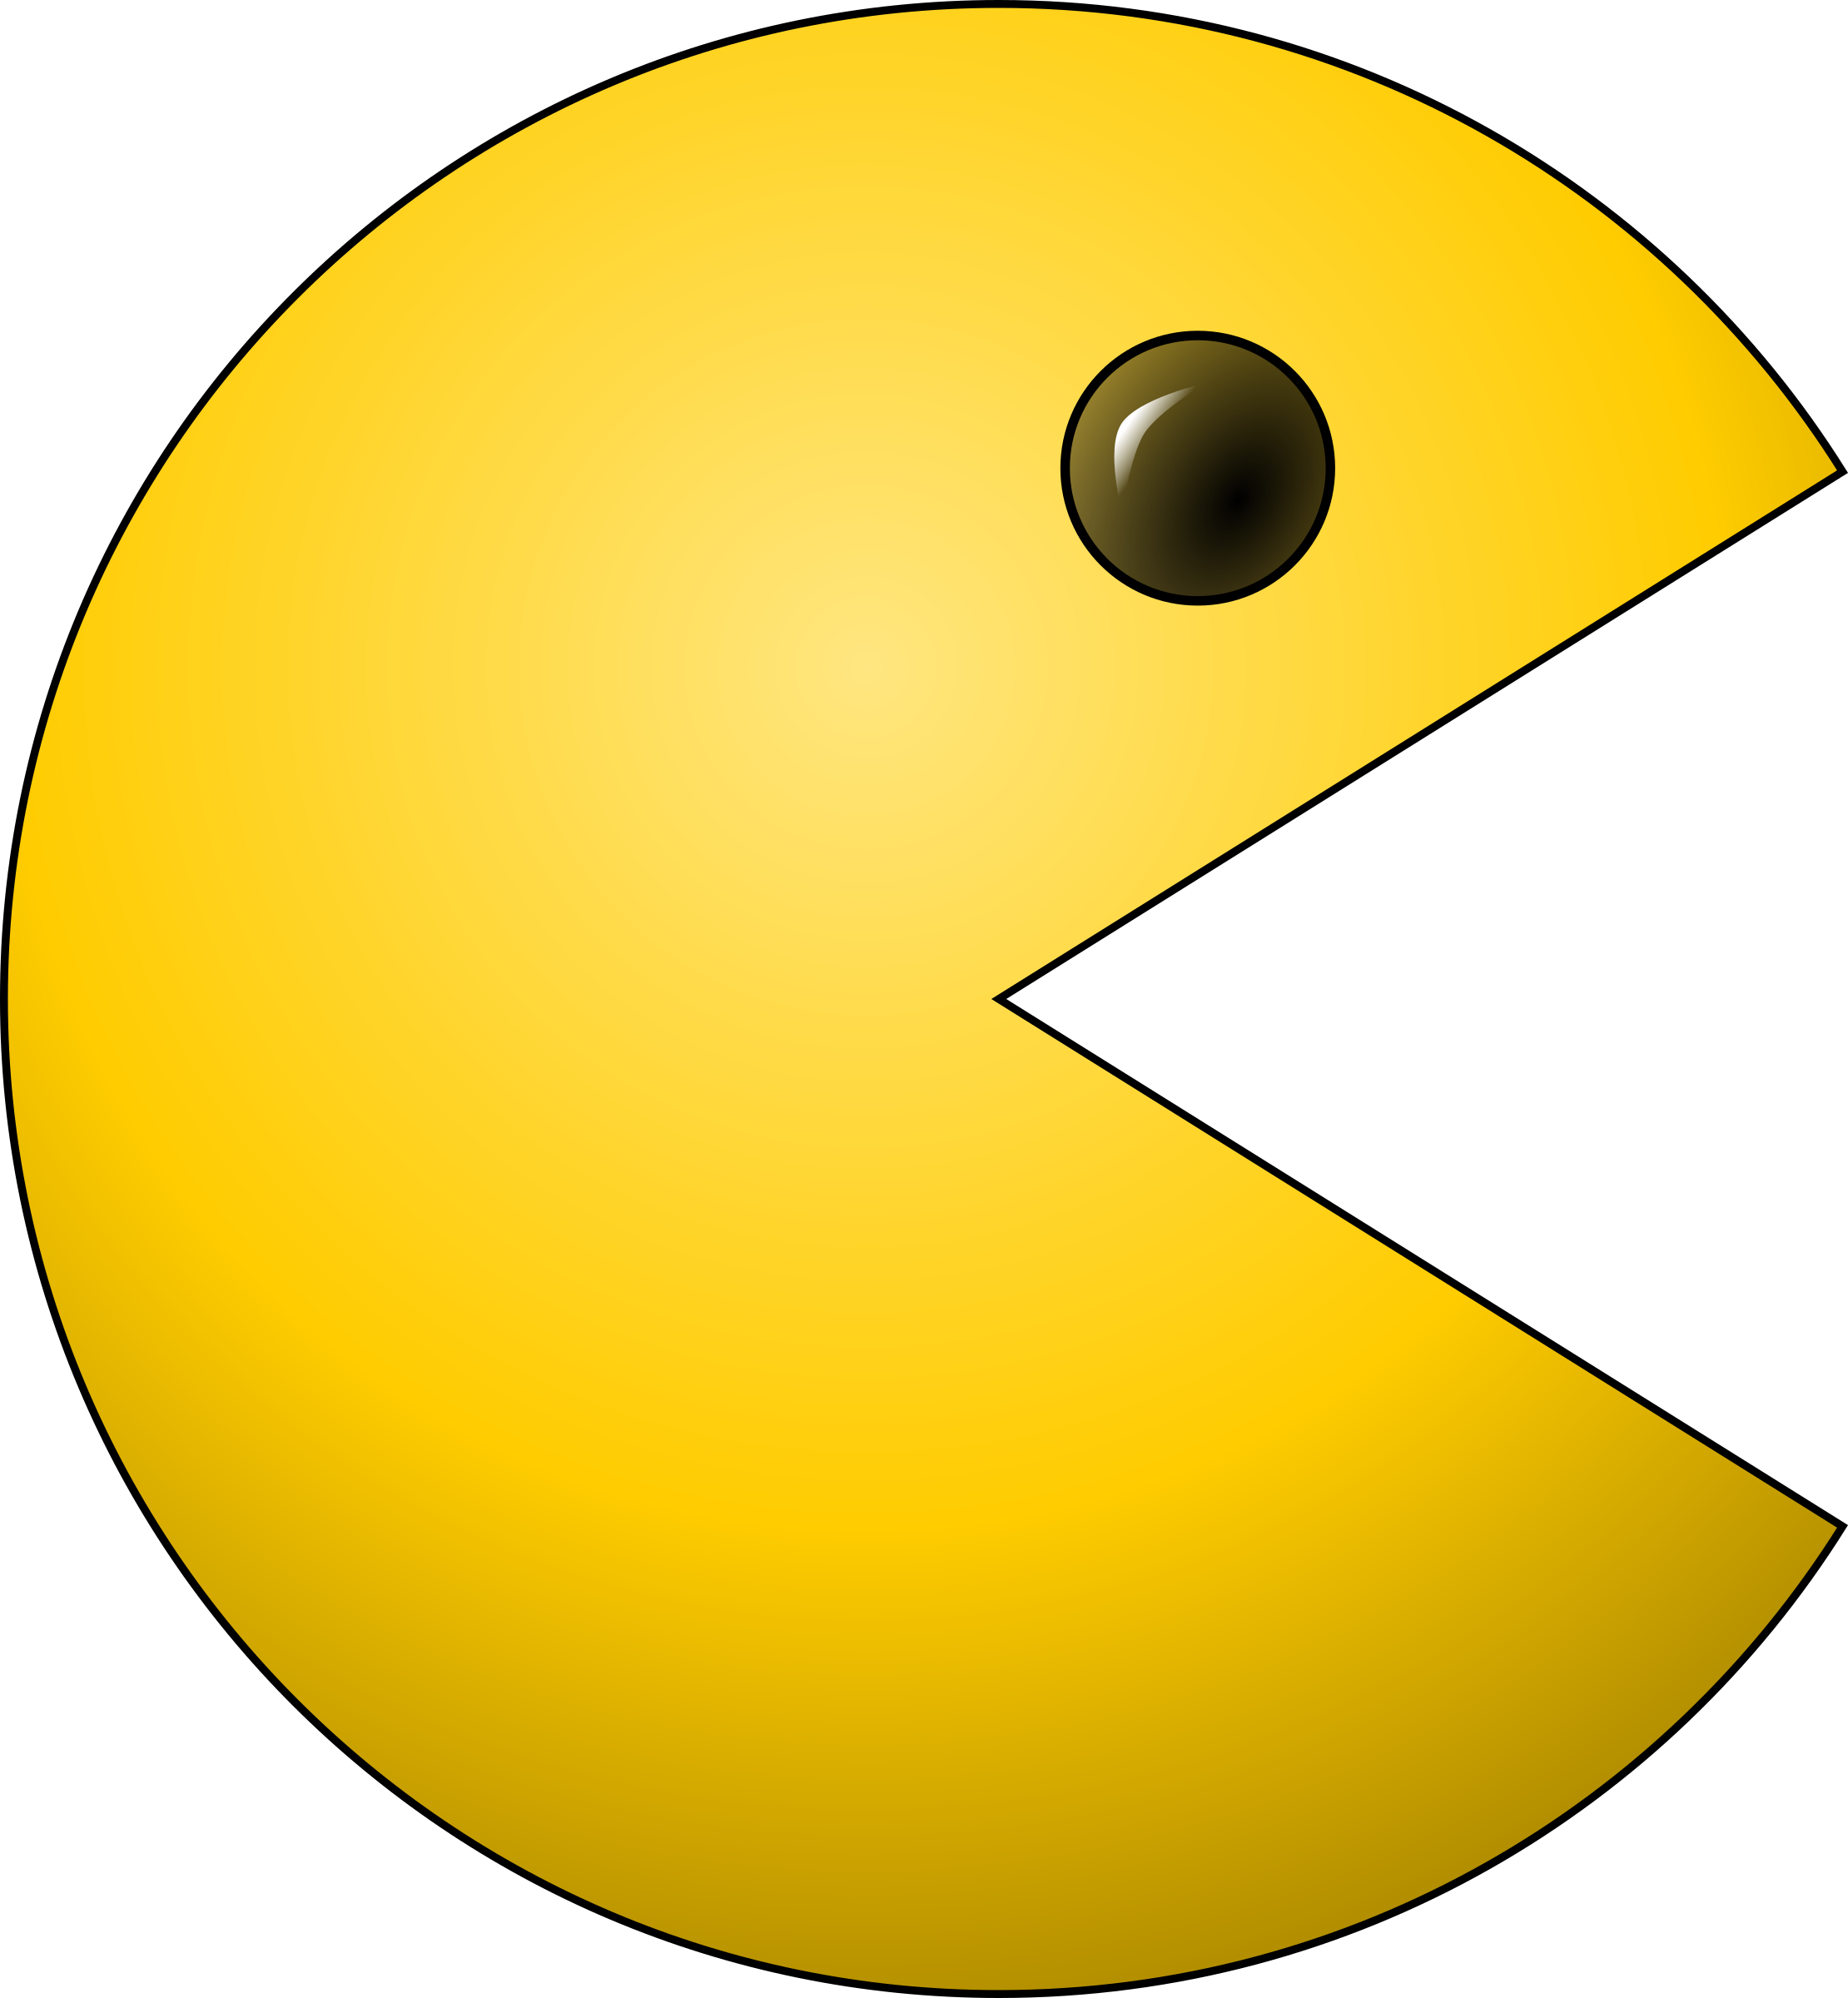 Pacman flash player game